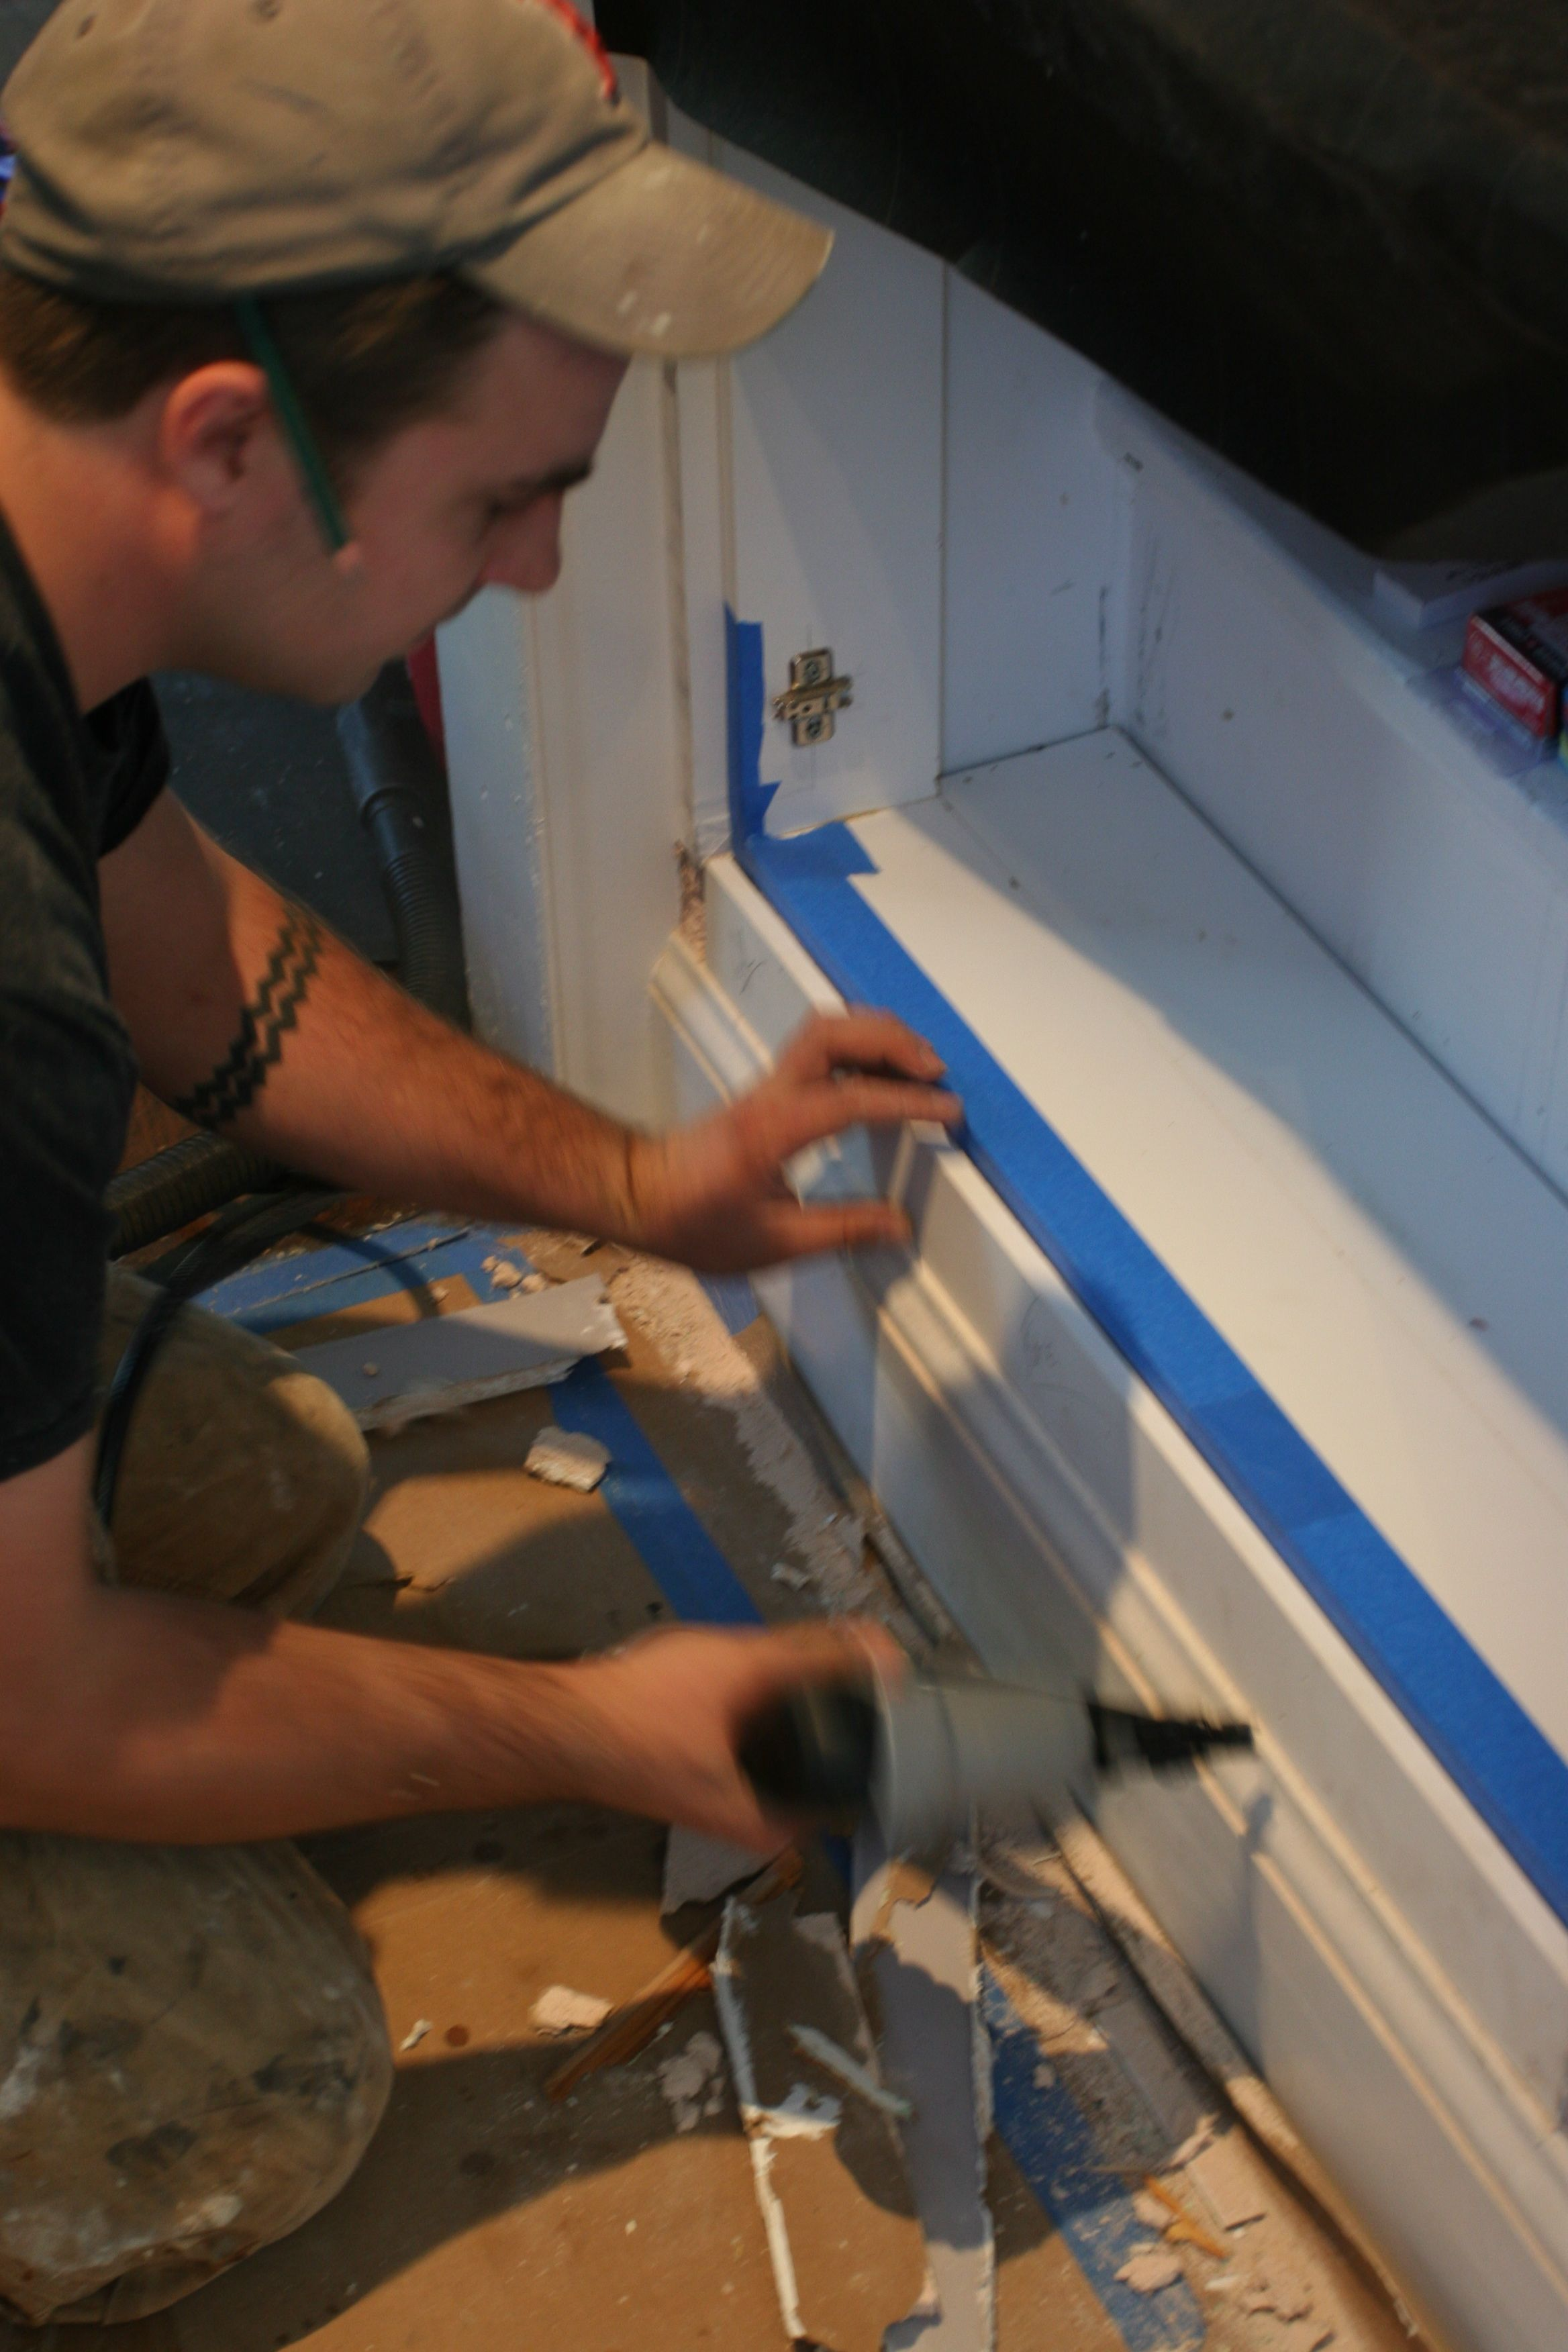 Dave adding a bit of smooth surface to make the pantry look more built-in.